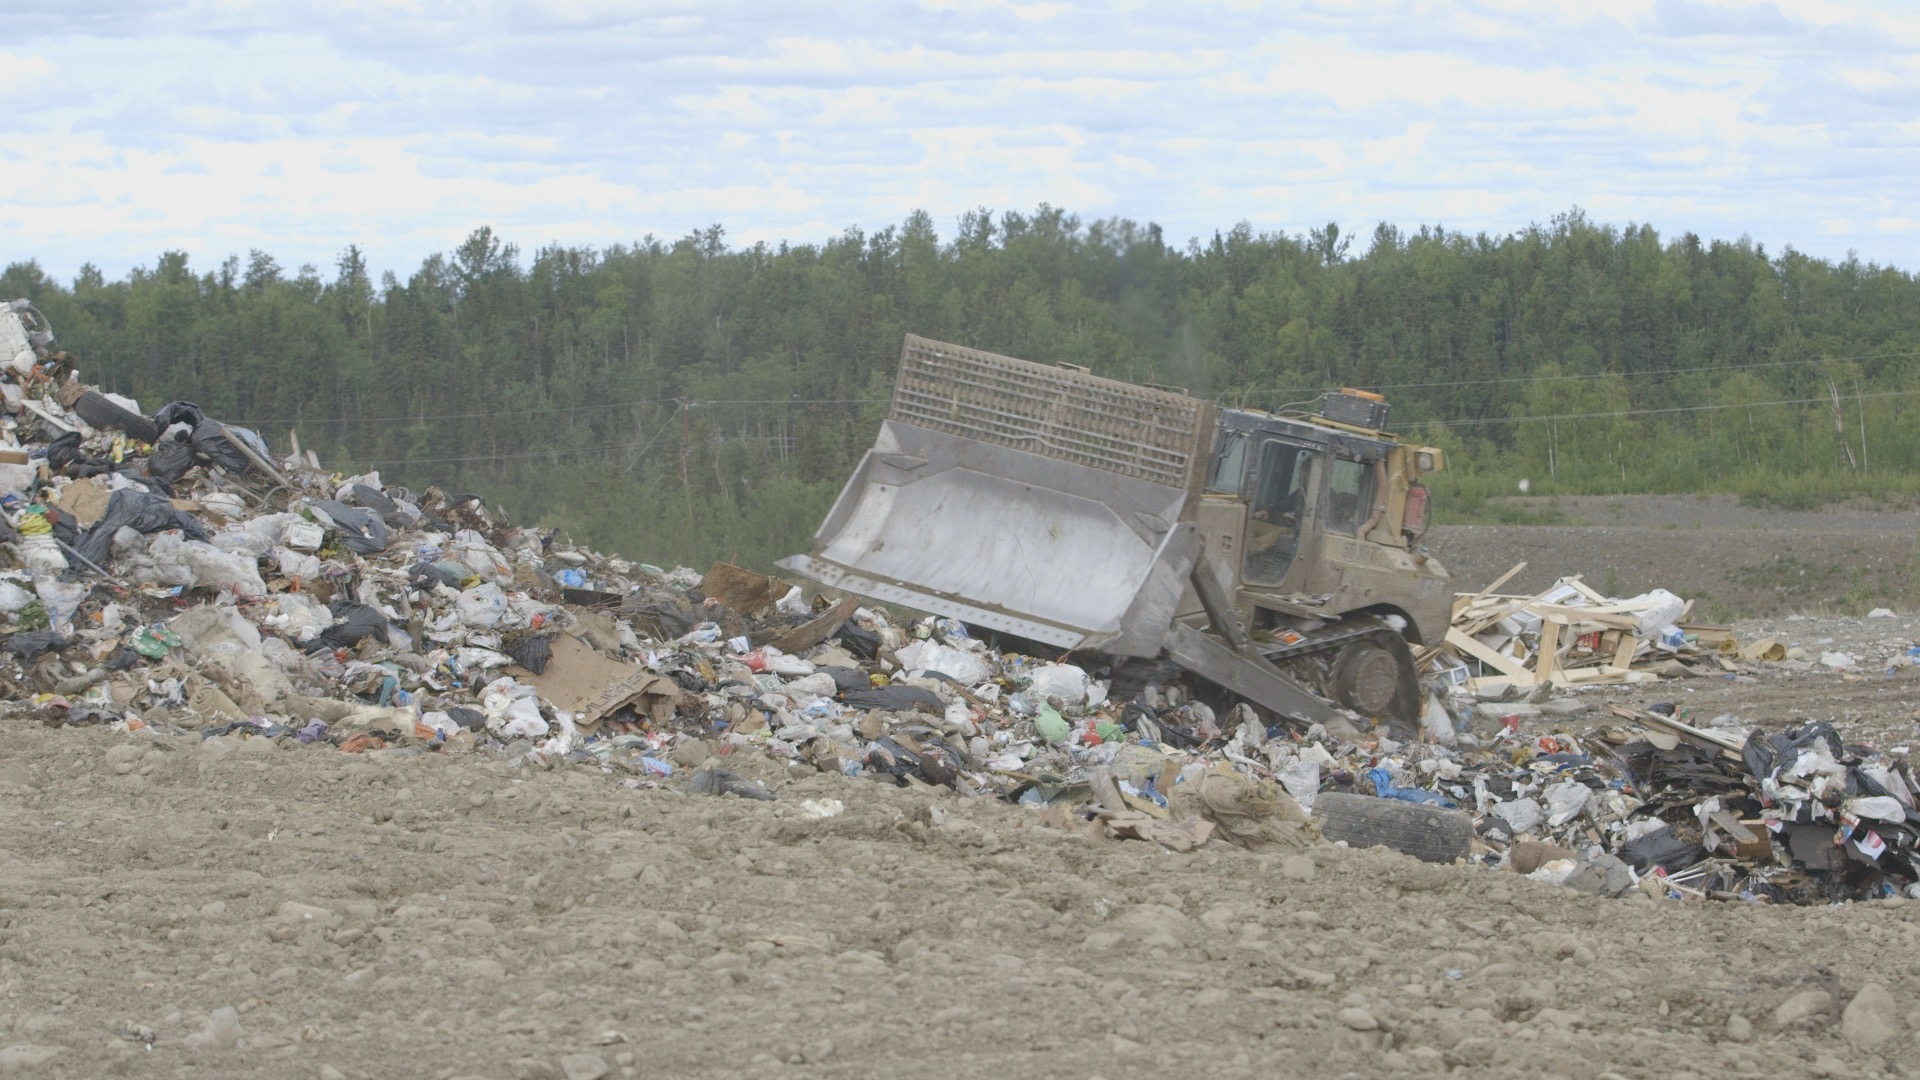 Anchorage Regional Landfill 2016 Alaska's Energy Desk/Eric Keto